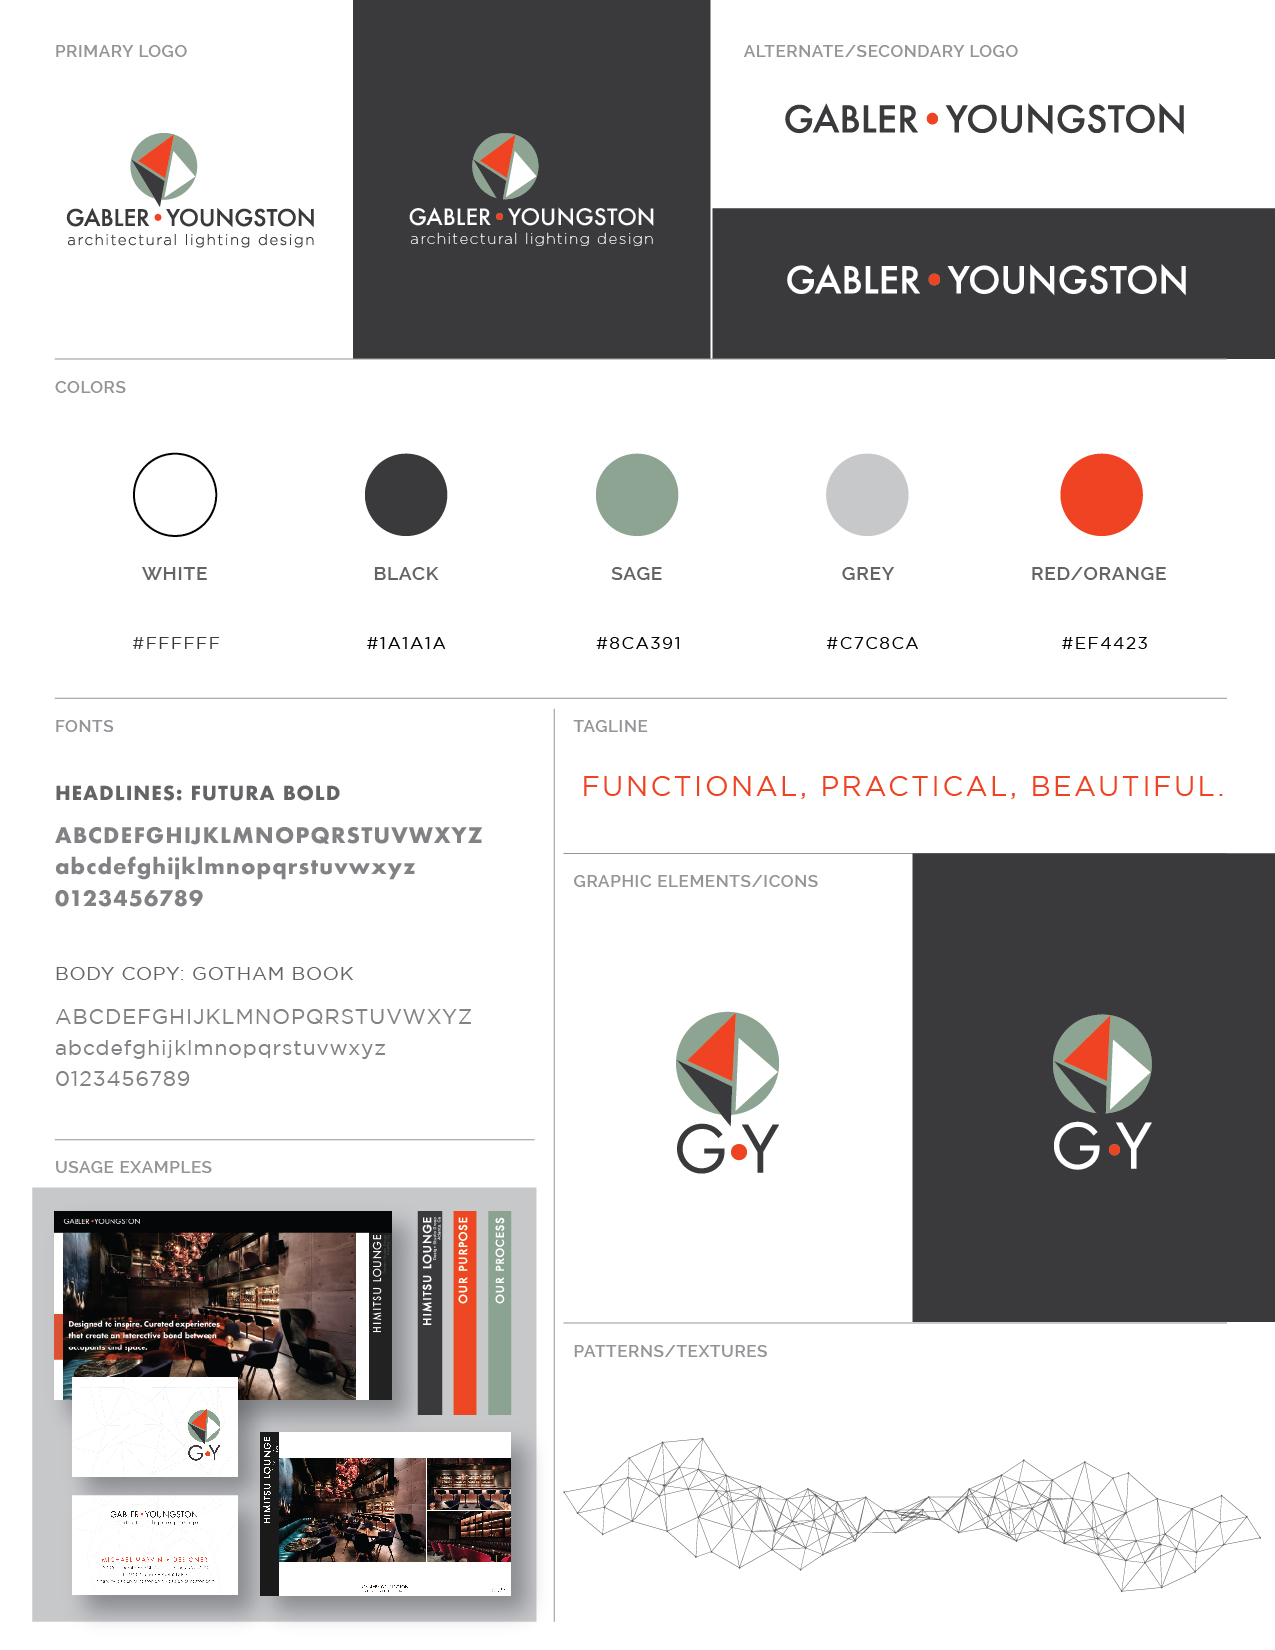 Gabler Youngston Brand Style Guide RGB-0